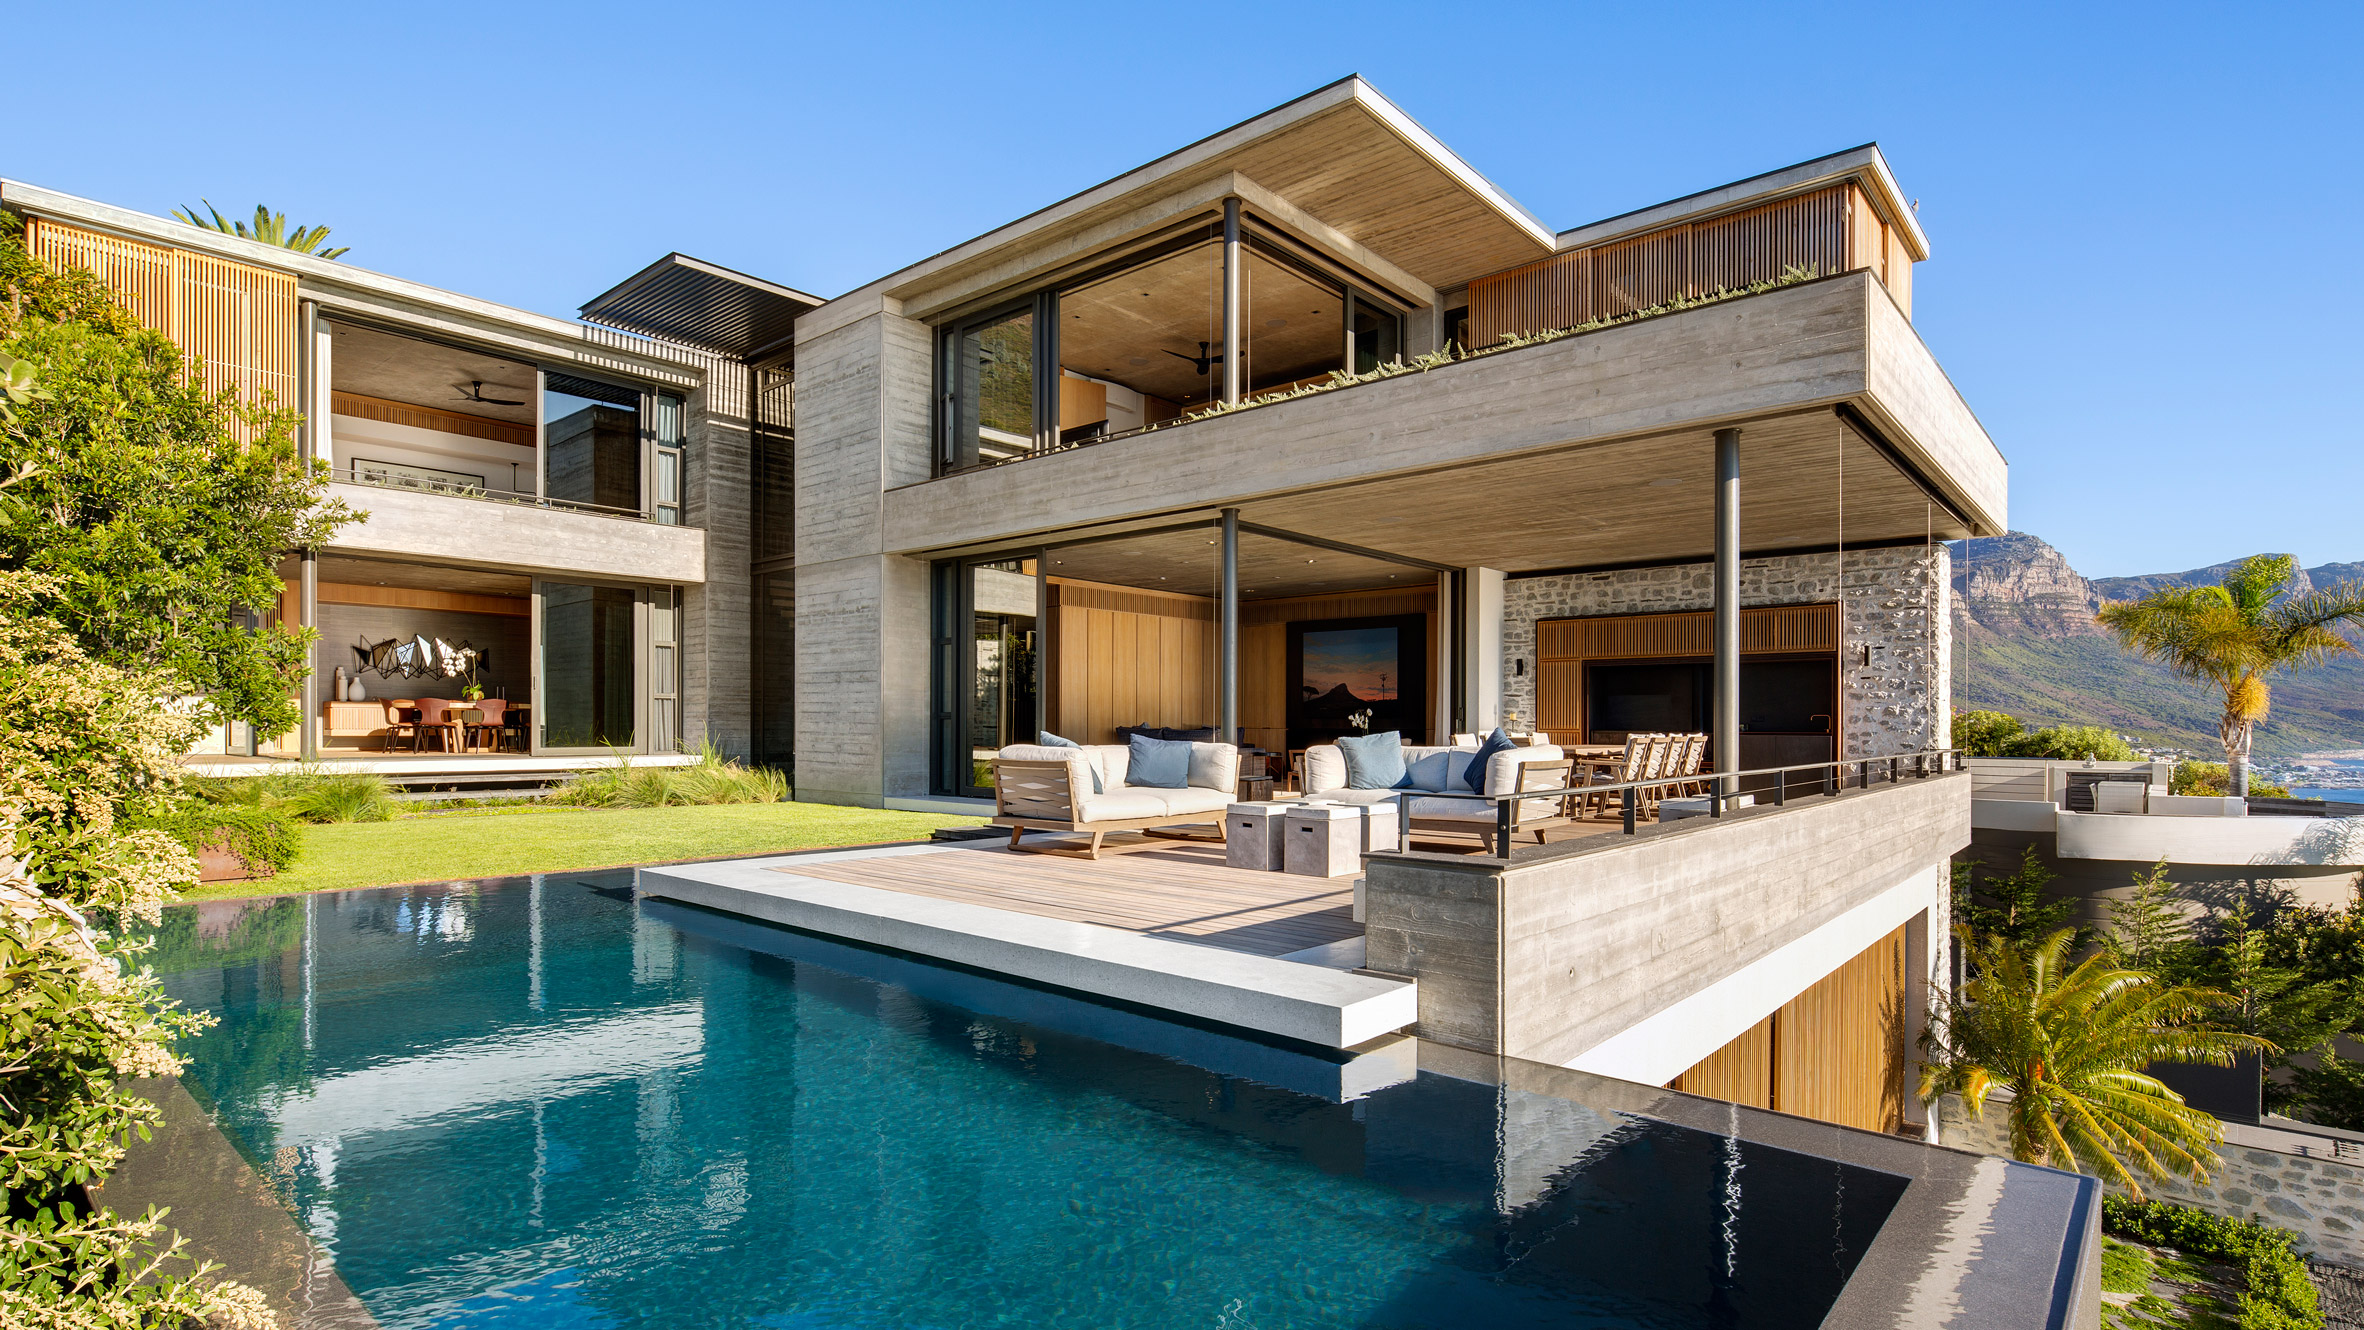 sliding glass walls allow sea breezes into malan vorster s clifton house